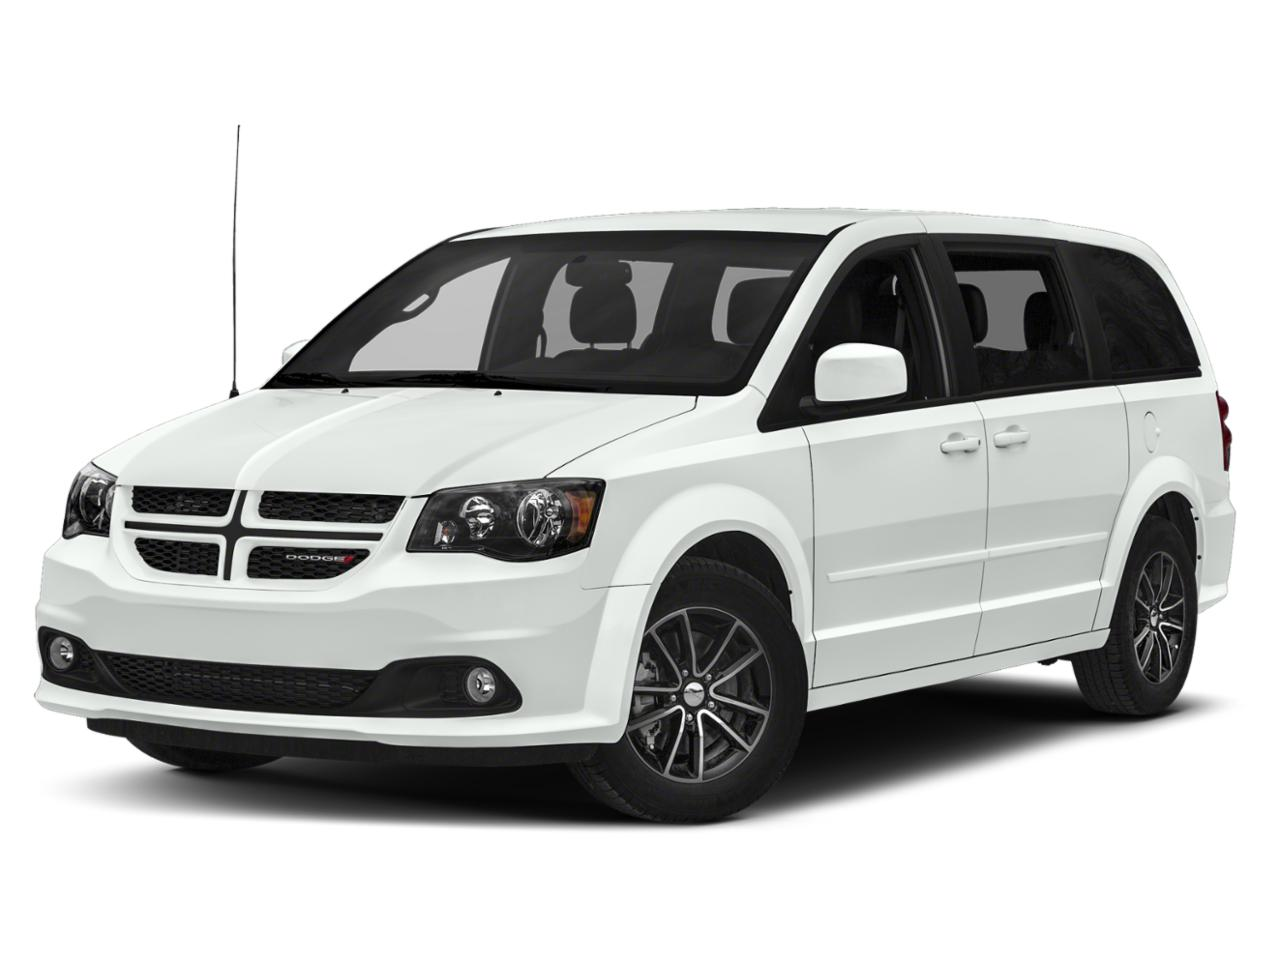 2019 Dodge Grand Caravan Vehicle Photo in Jasper, GA 30143